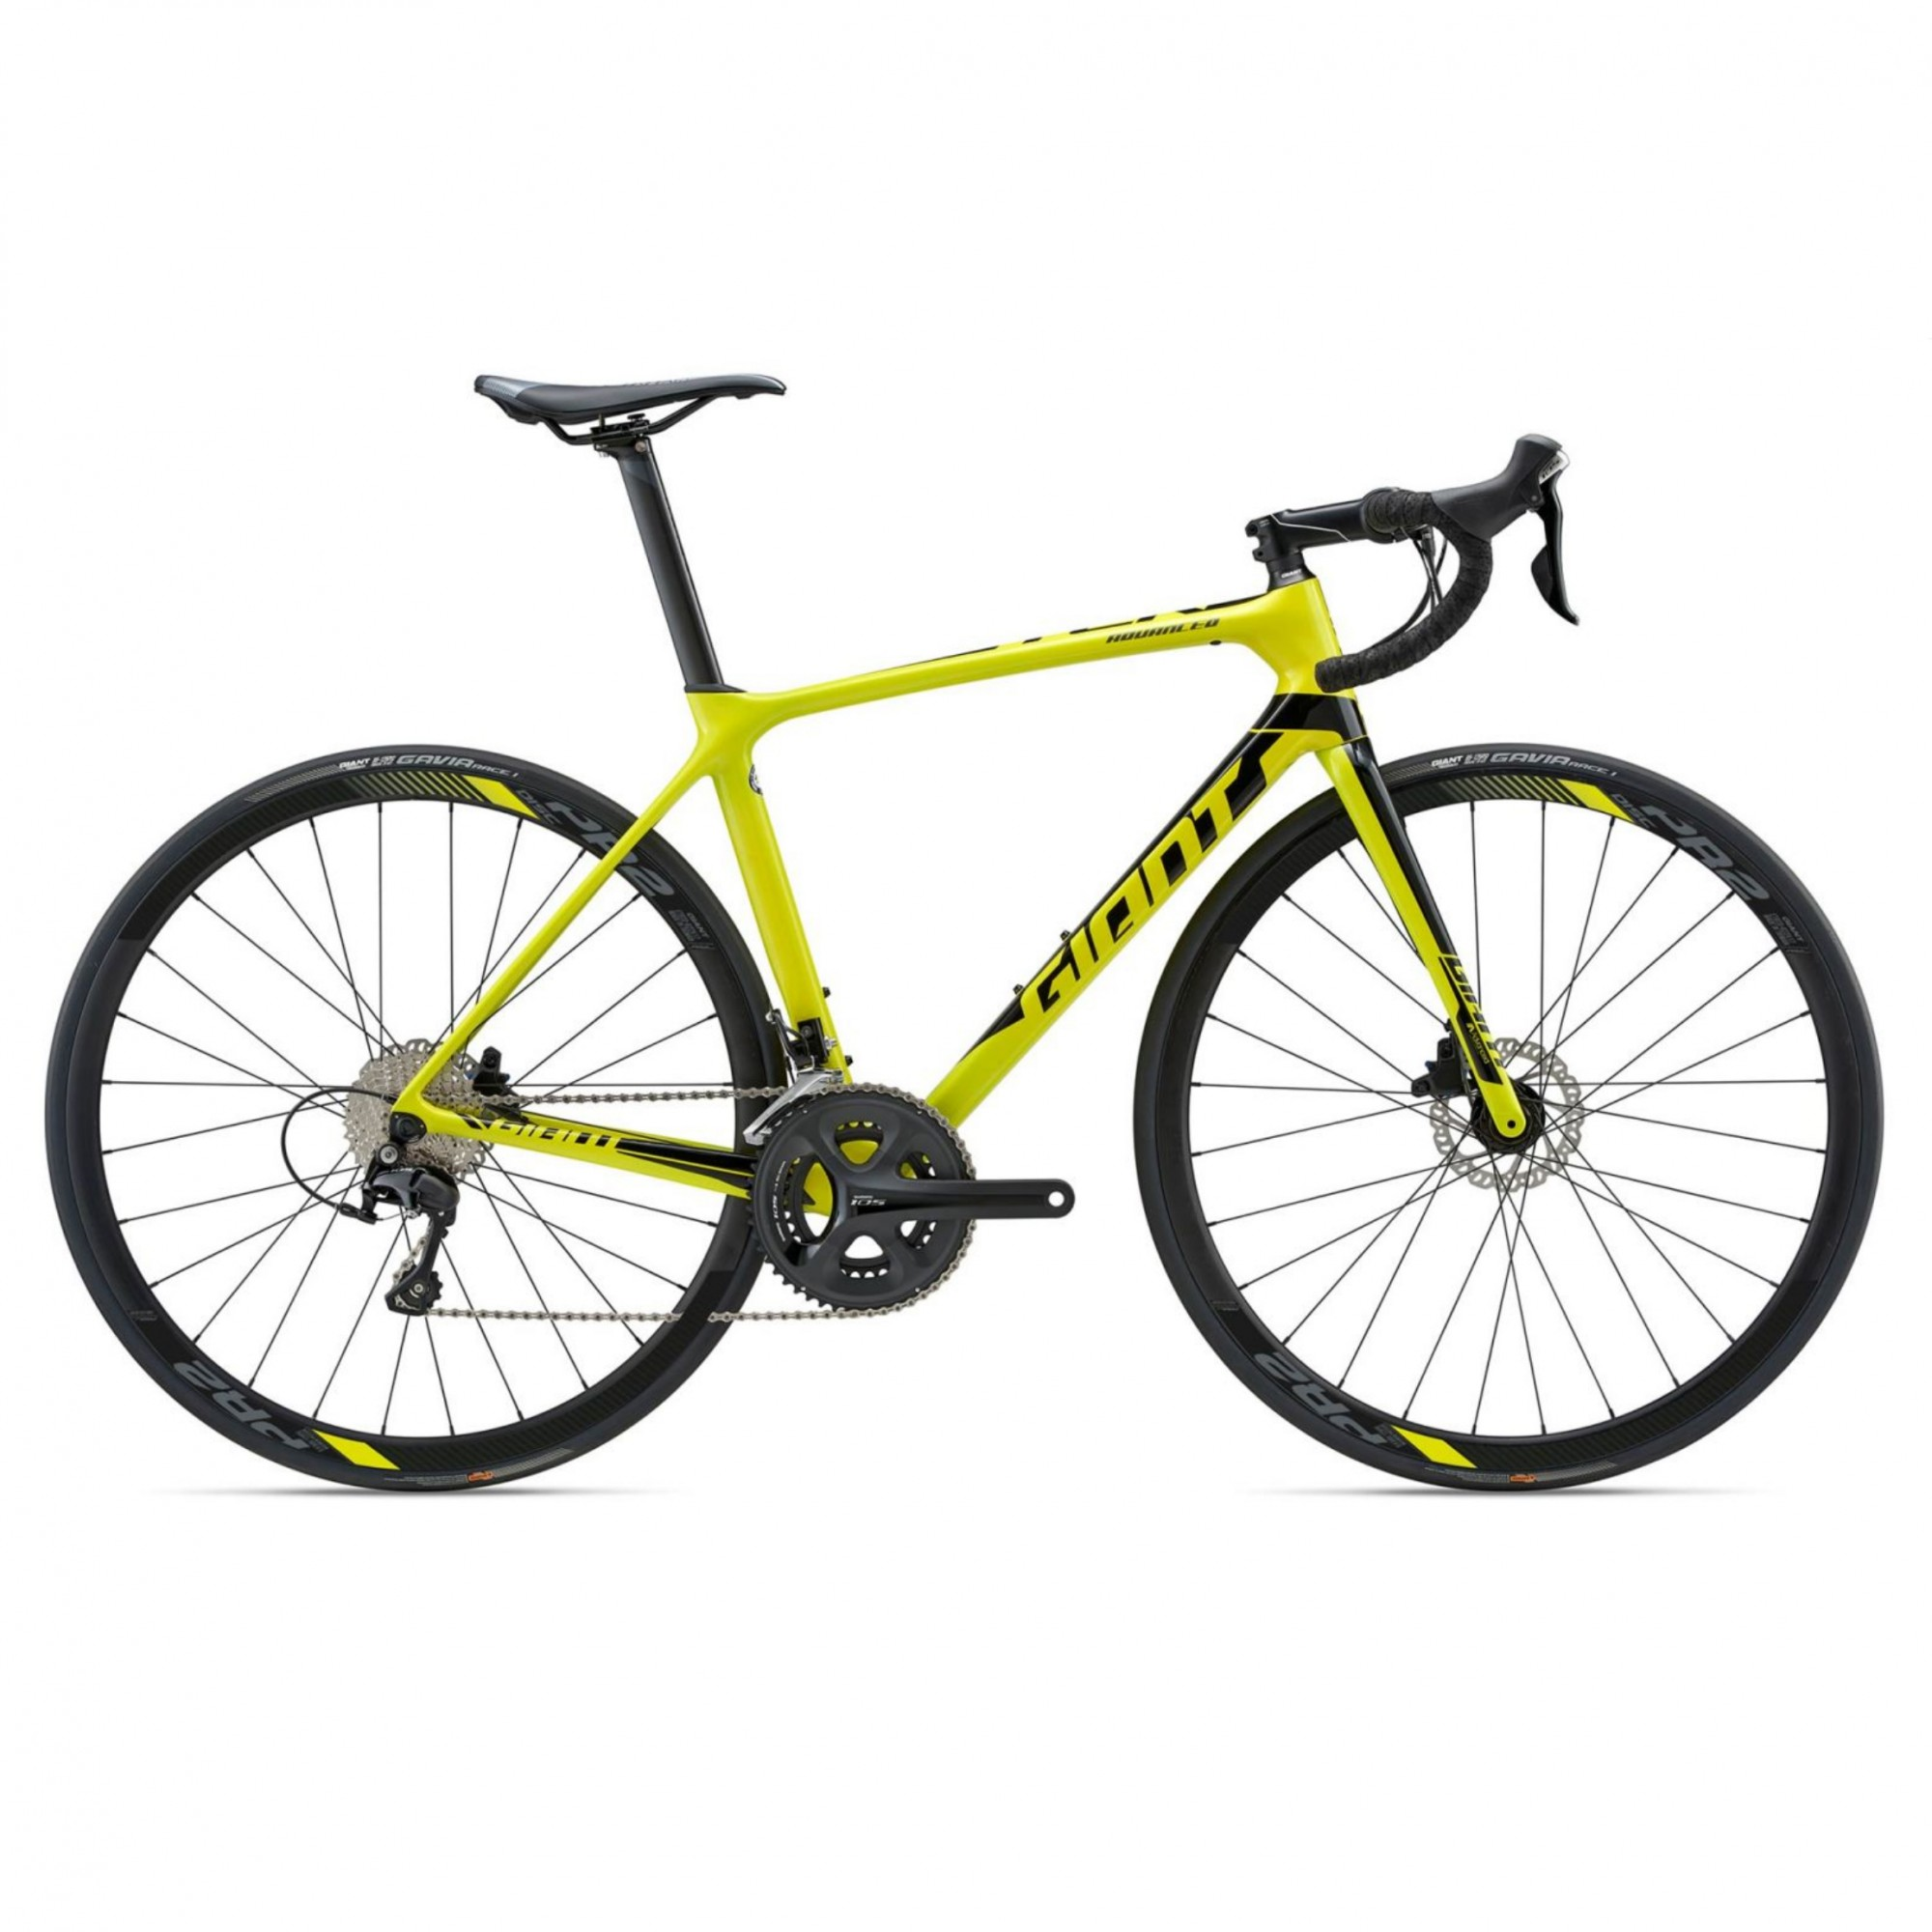 GIANT TCR ADVANCED 2 DISC KOM 2018